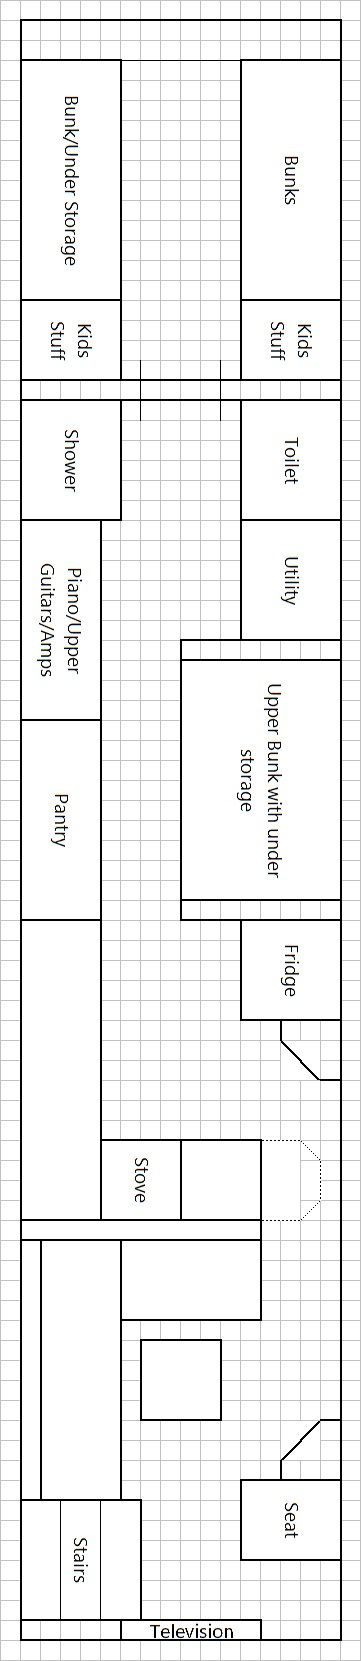 Skoolie Floor Plan Skoolie Pinterest Initials Buses and